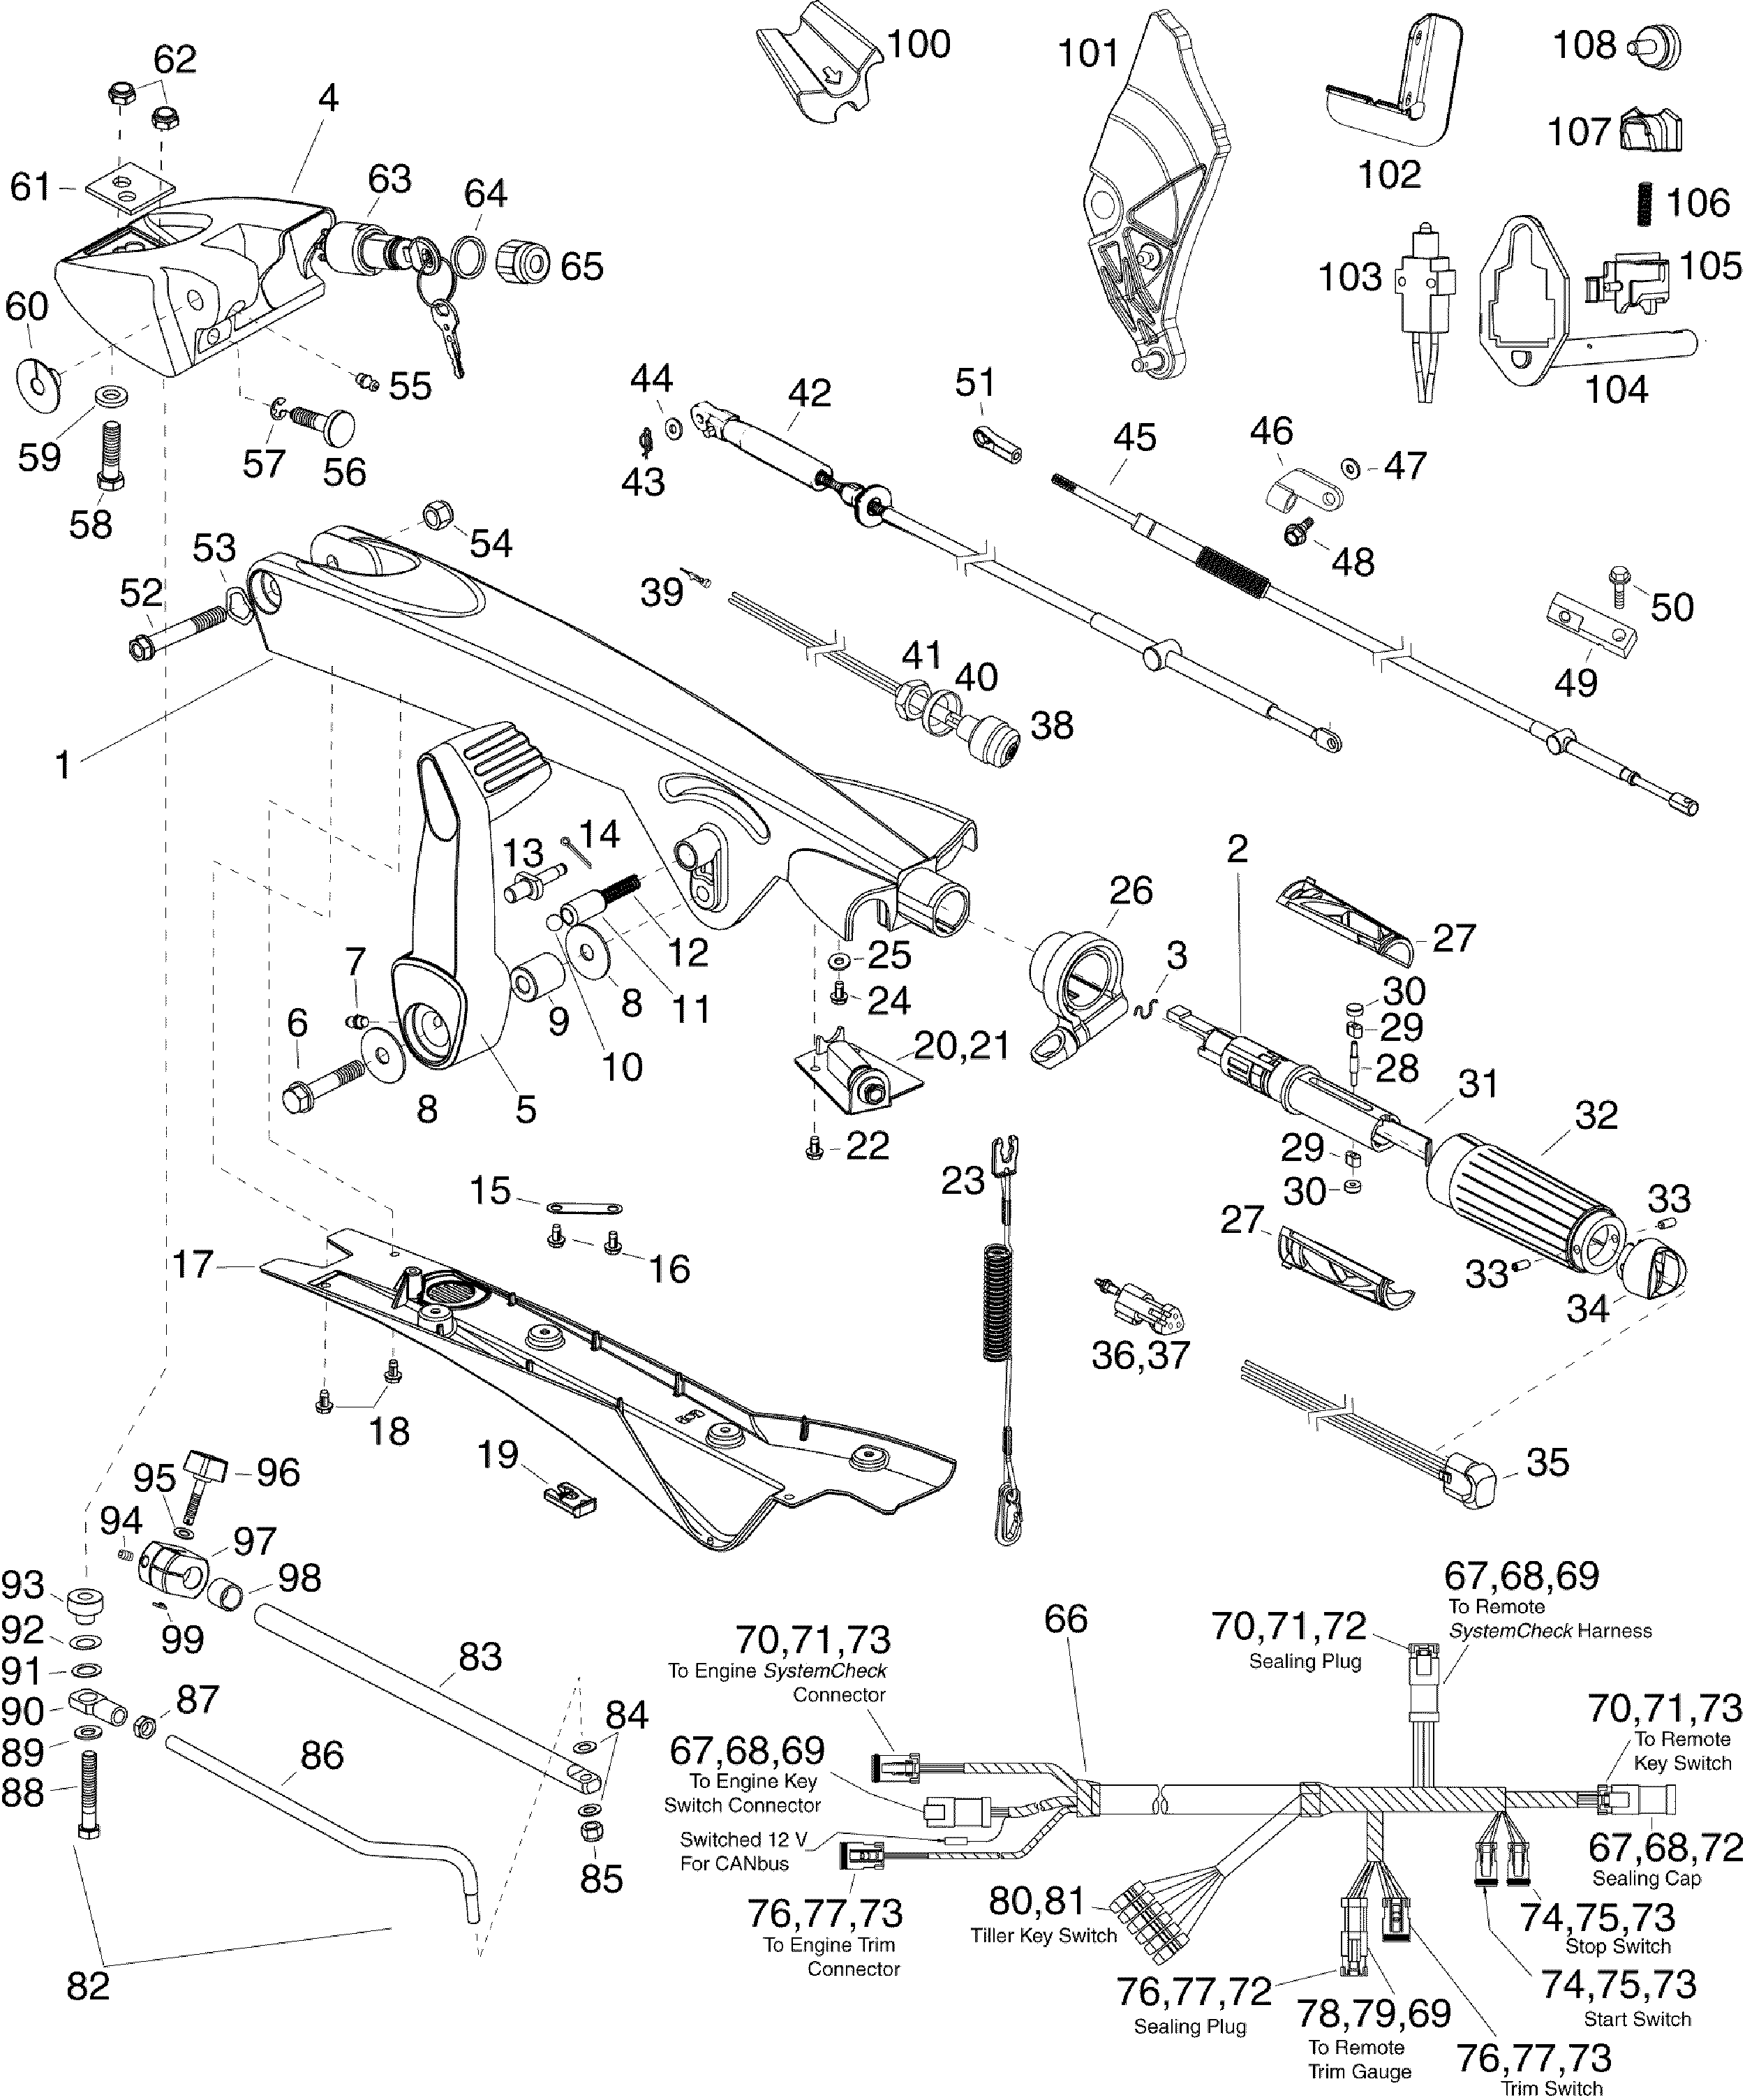 66523 Yamaha Tach Wiring Diagram Og on yamaha wire harness diagram, yamaha fuel gauge diagram, yamaha starter relay diagram, yamaha digital gauge wiring, yamaha gas gauge diagram, yamaha ignition diagram, 60 hp johnson outboard tachometer diagram, yamaha snowmobile wiring diagrams,